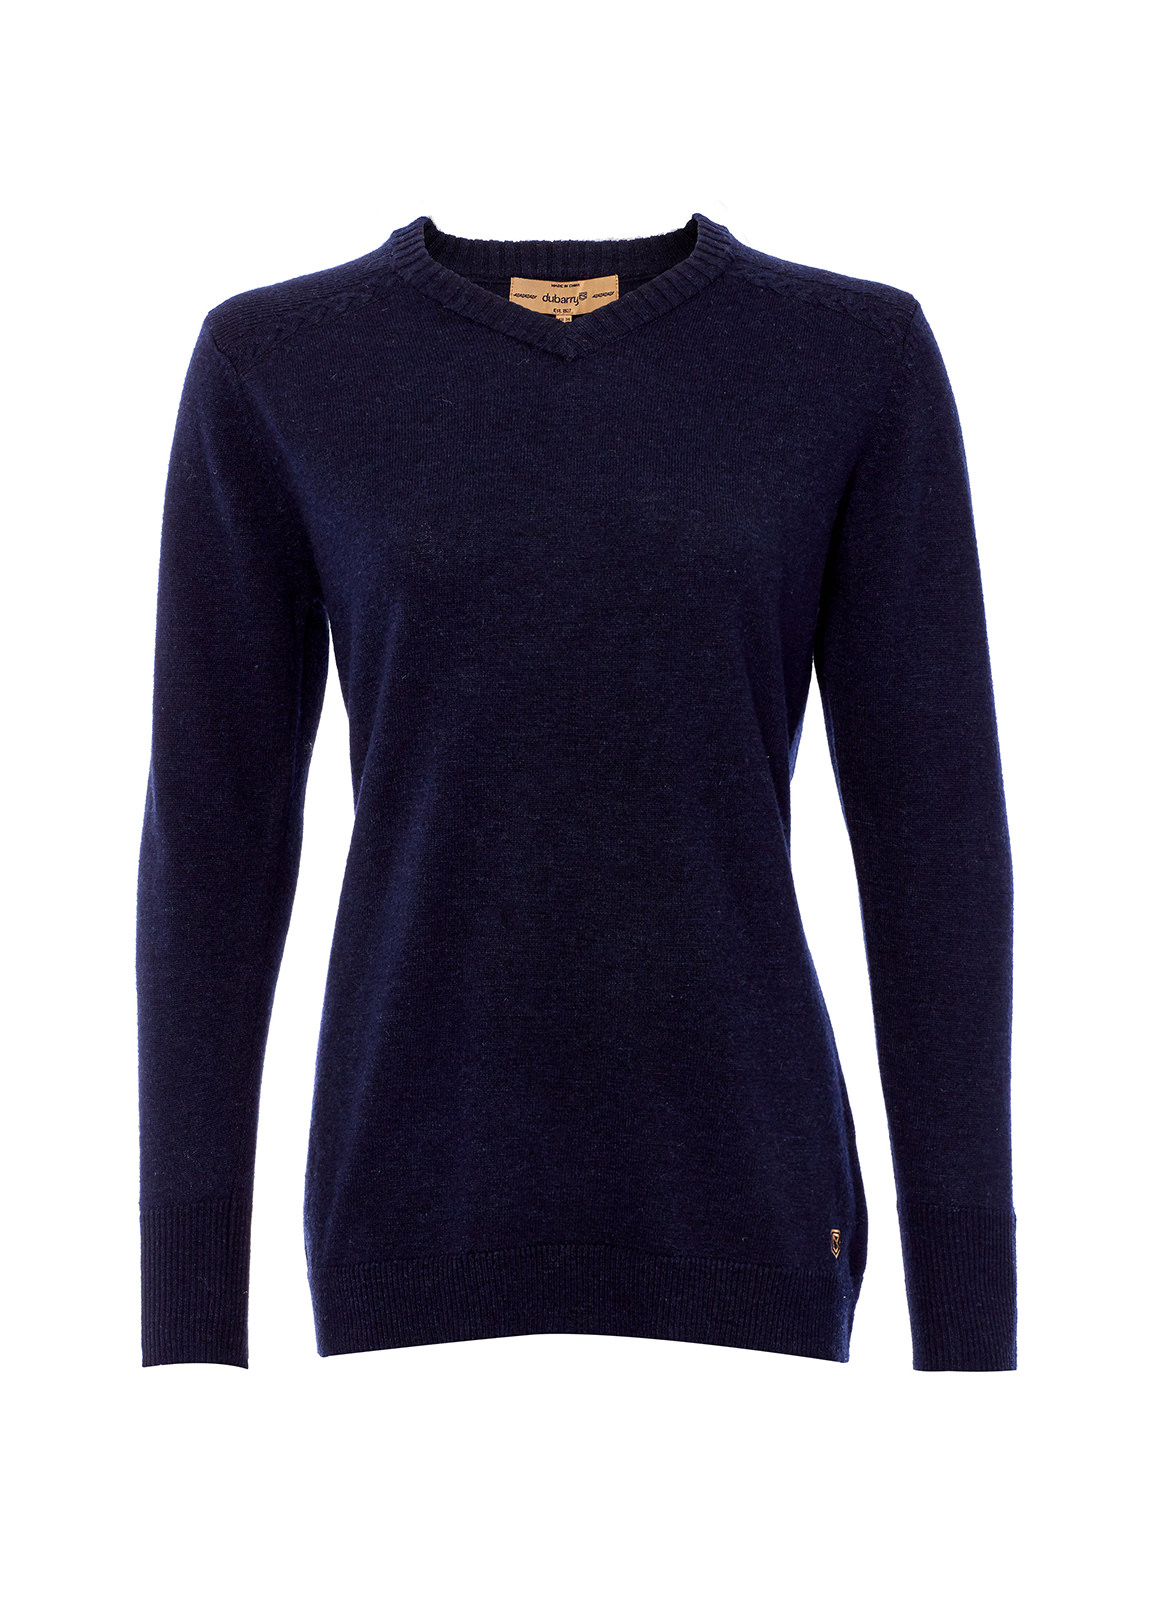 Ballycastle Sweater - Navy